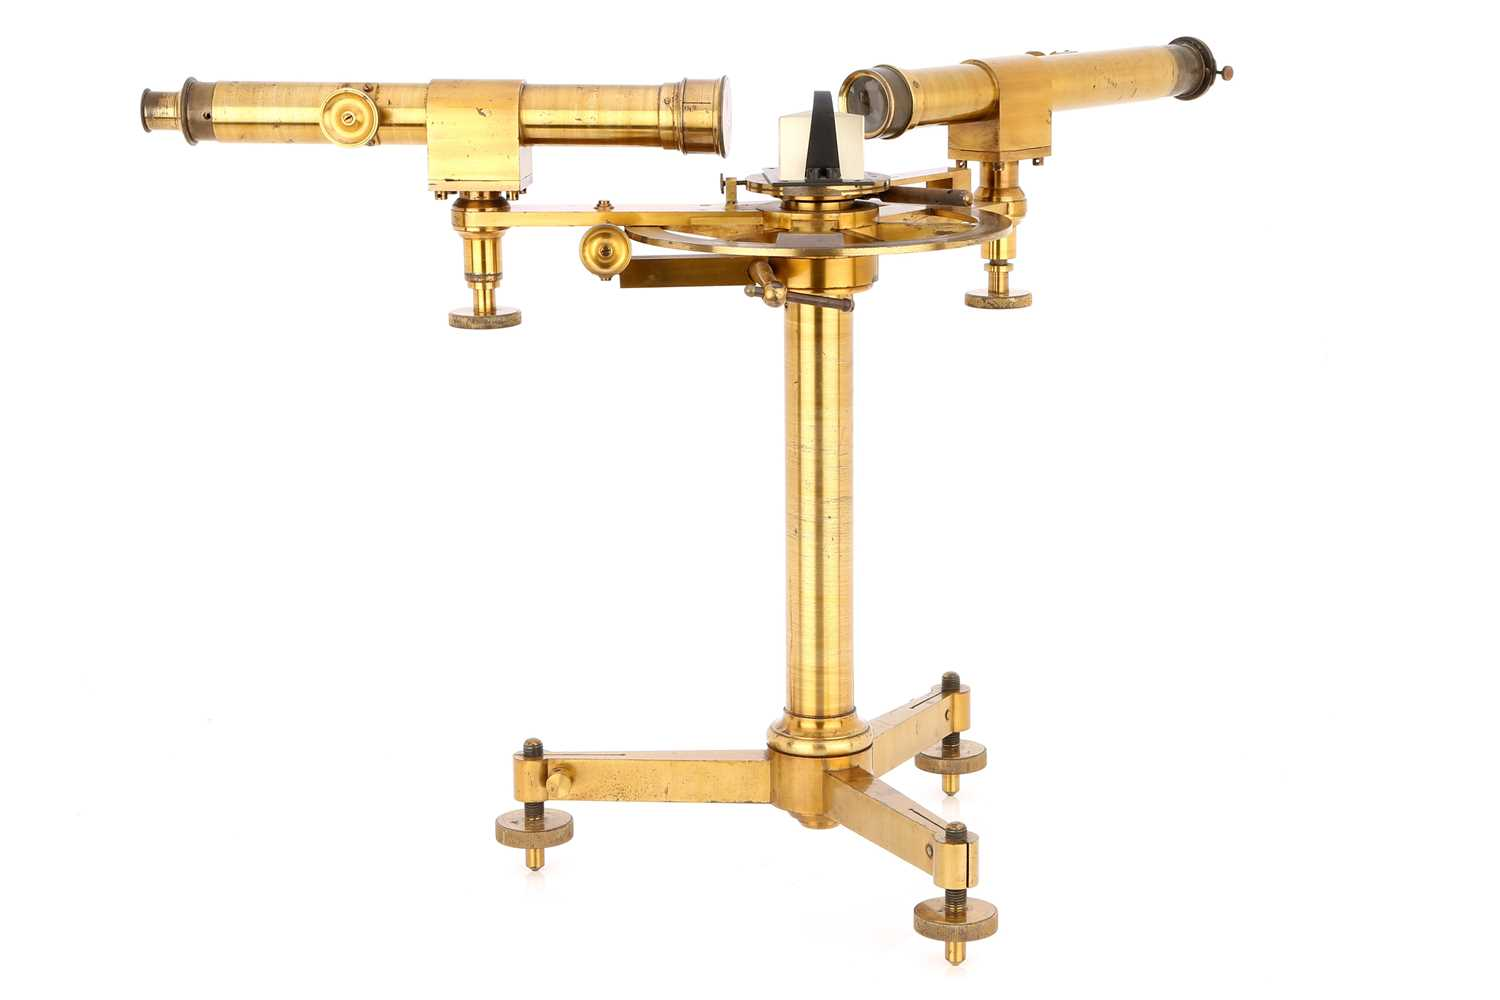 Lot 48-A Large & Impressive Laboratory Spectroscope by Elliot